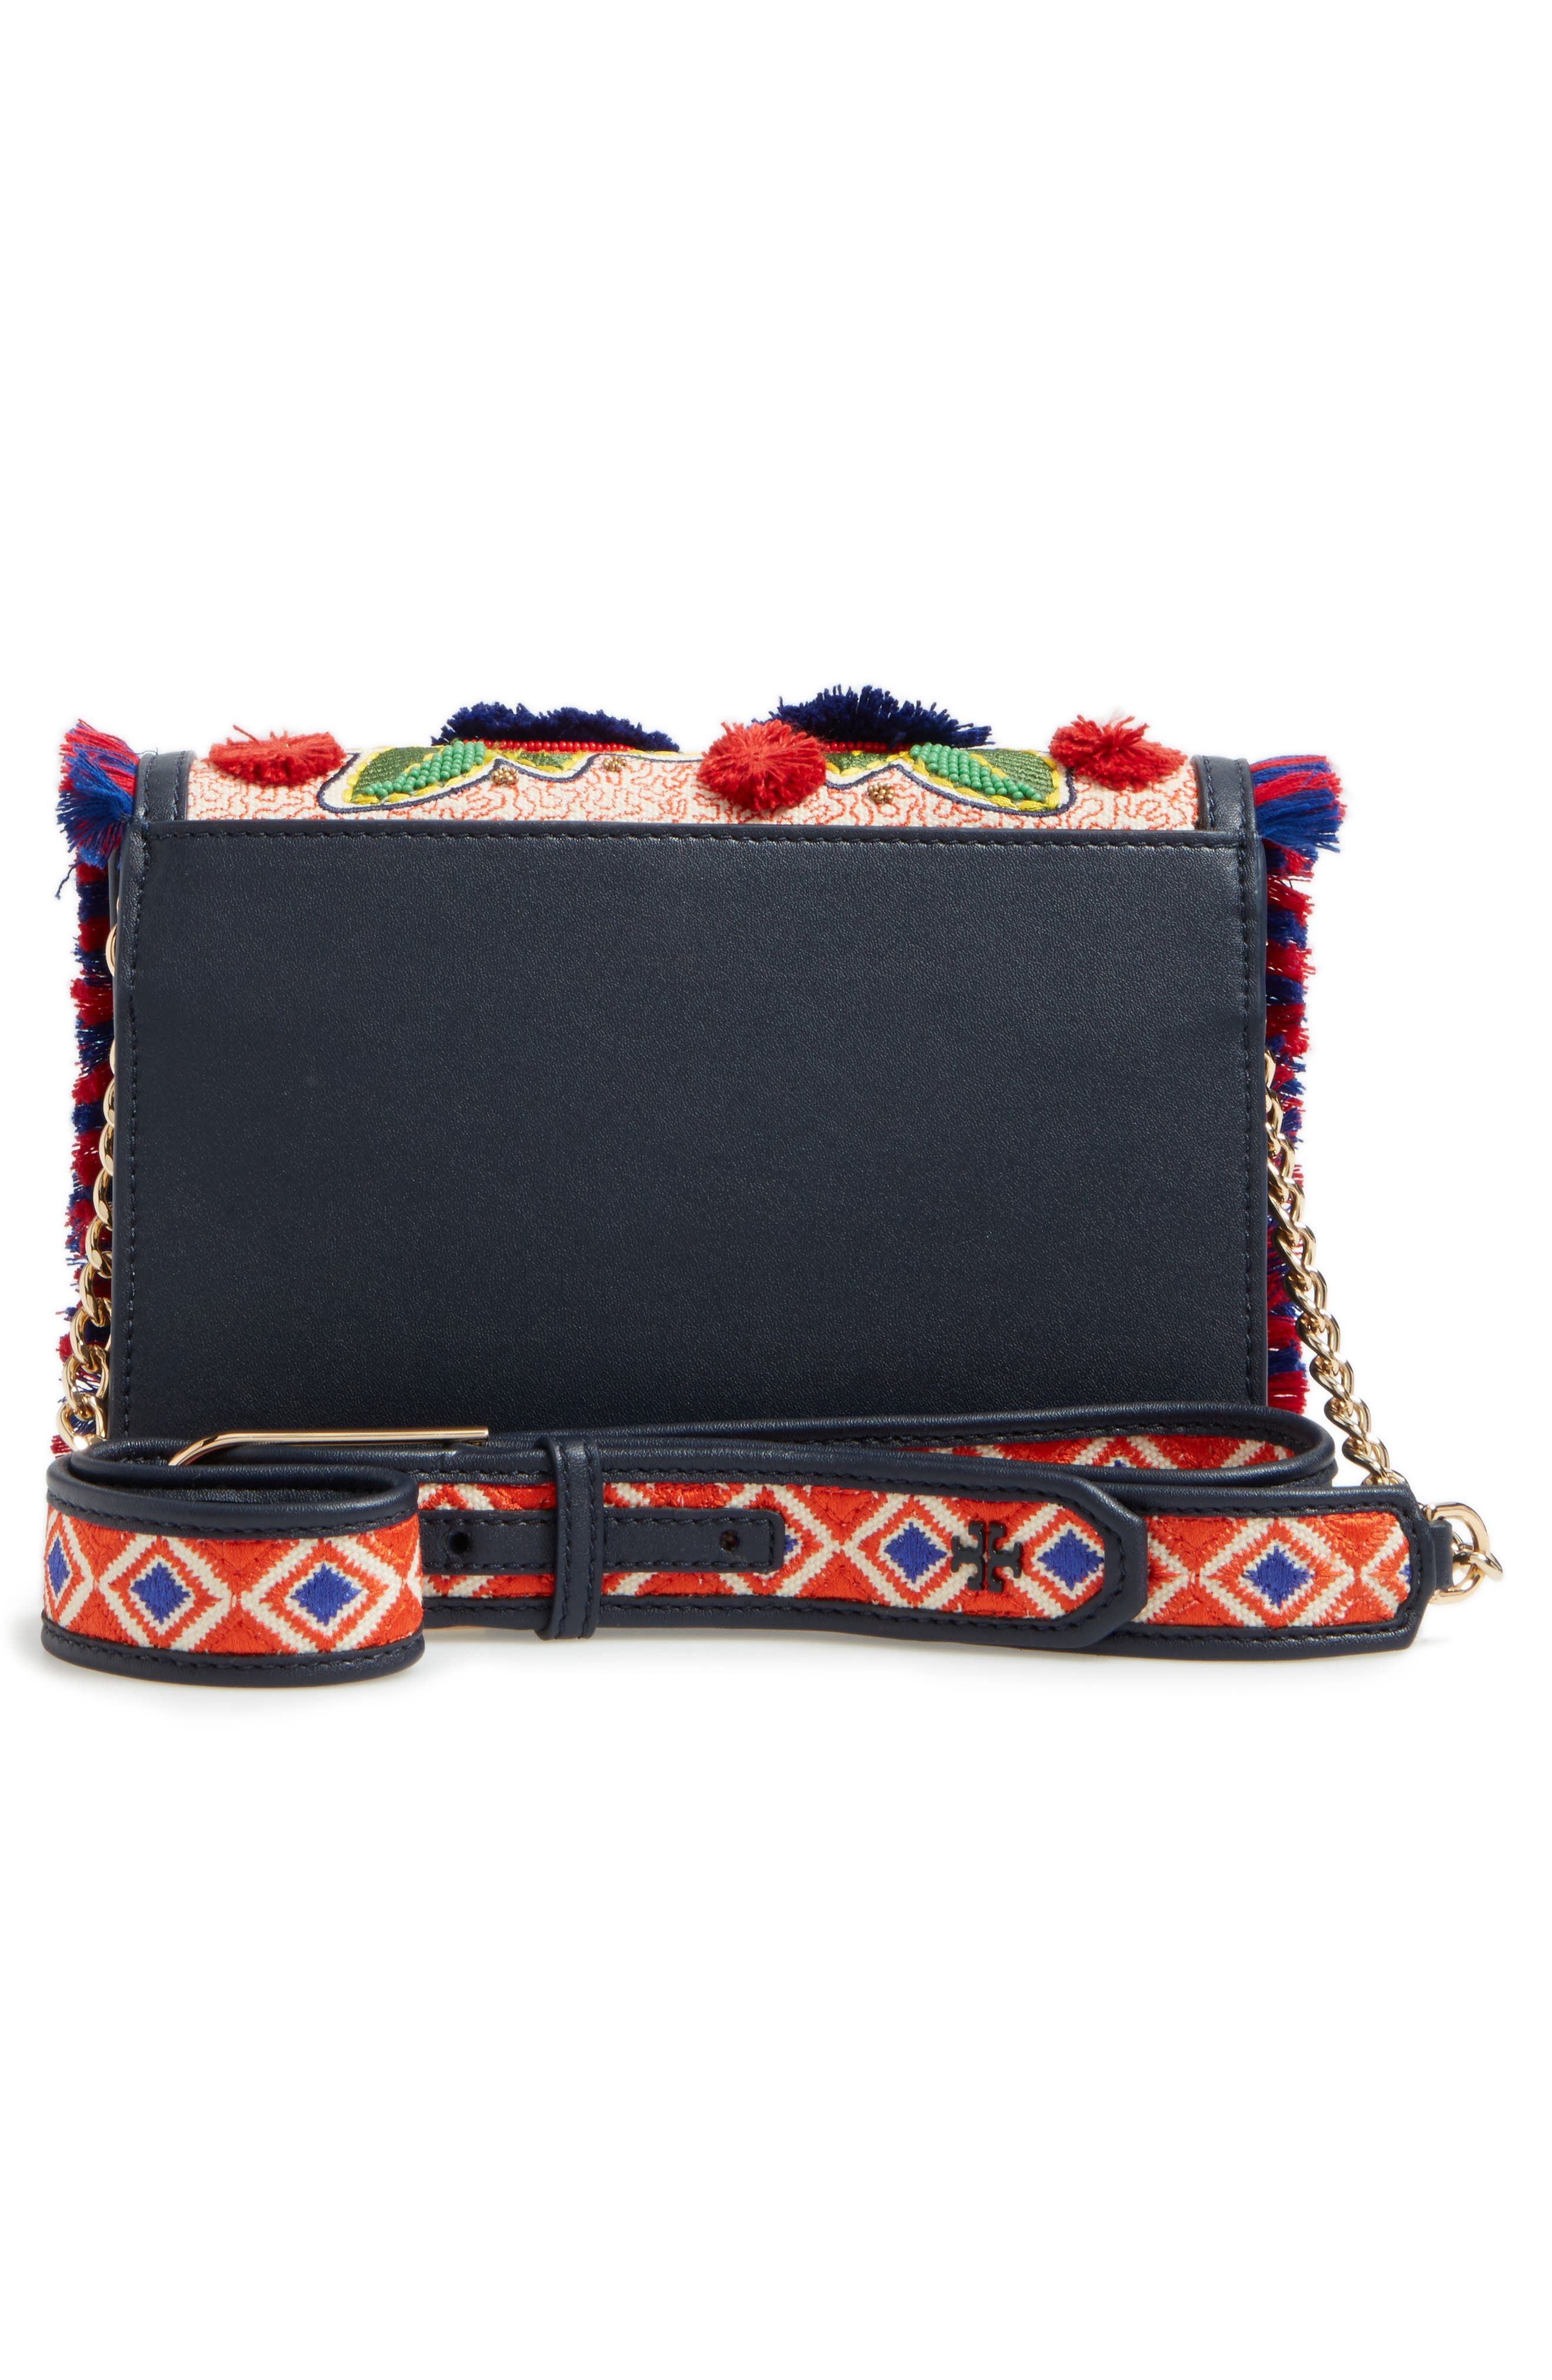 Alternate Image 2  - Tory Burch Embroidered Floral Crossbody Bag